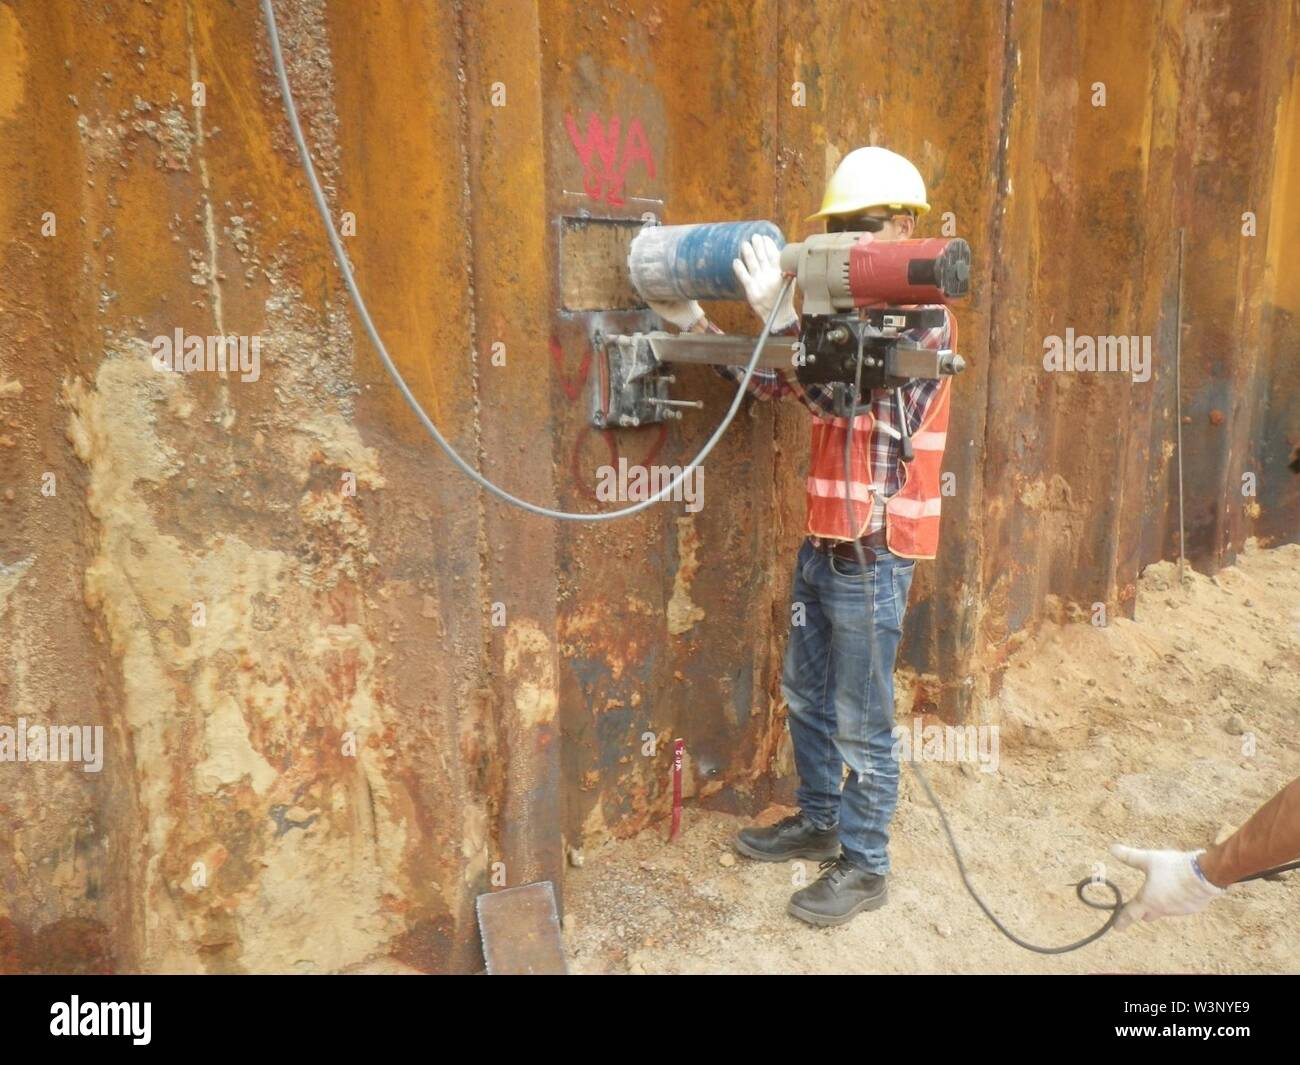 Collecting a concrete core sample of the containment structure to analyze the insulating value after Phase 1 treatment. (26783265476). - Stock Image